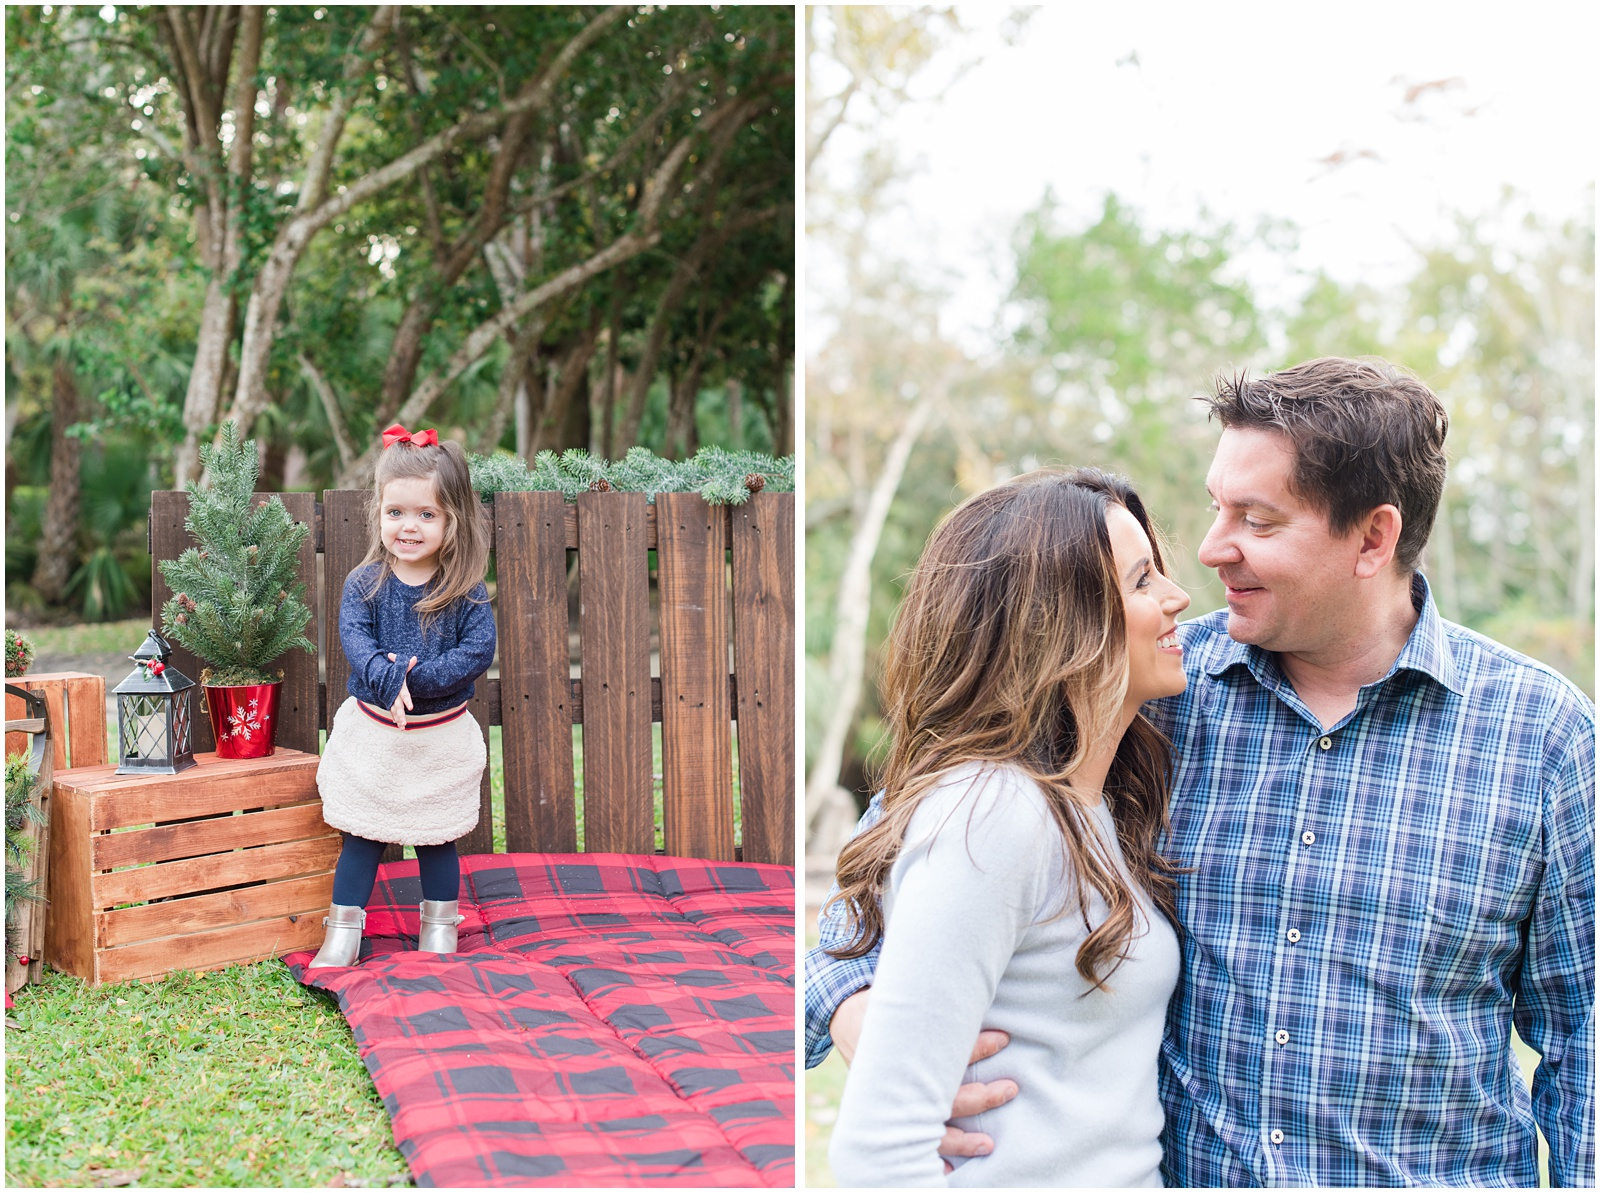 Christmas_Mini Sessions_Holidays_Howell Park_Jacksonville_Florida_13.jpg